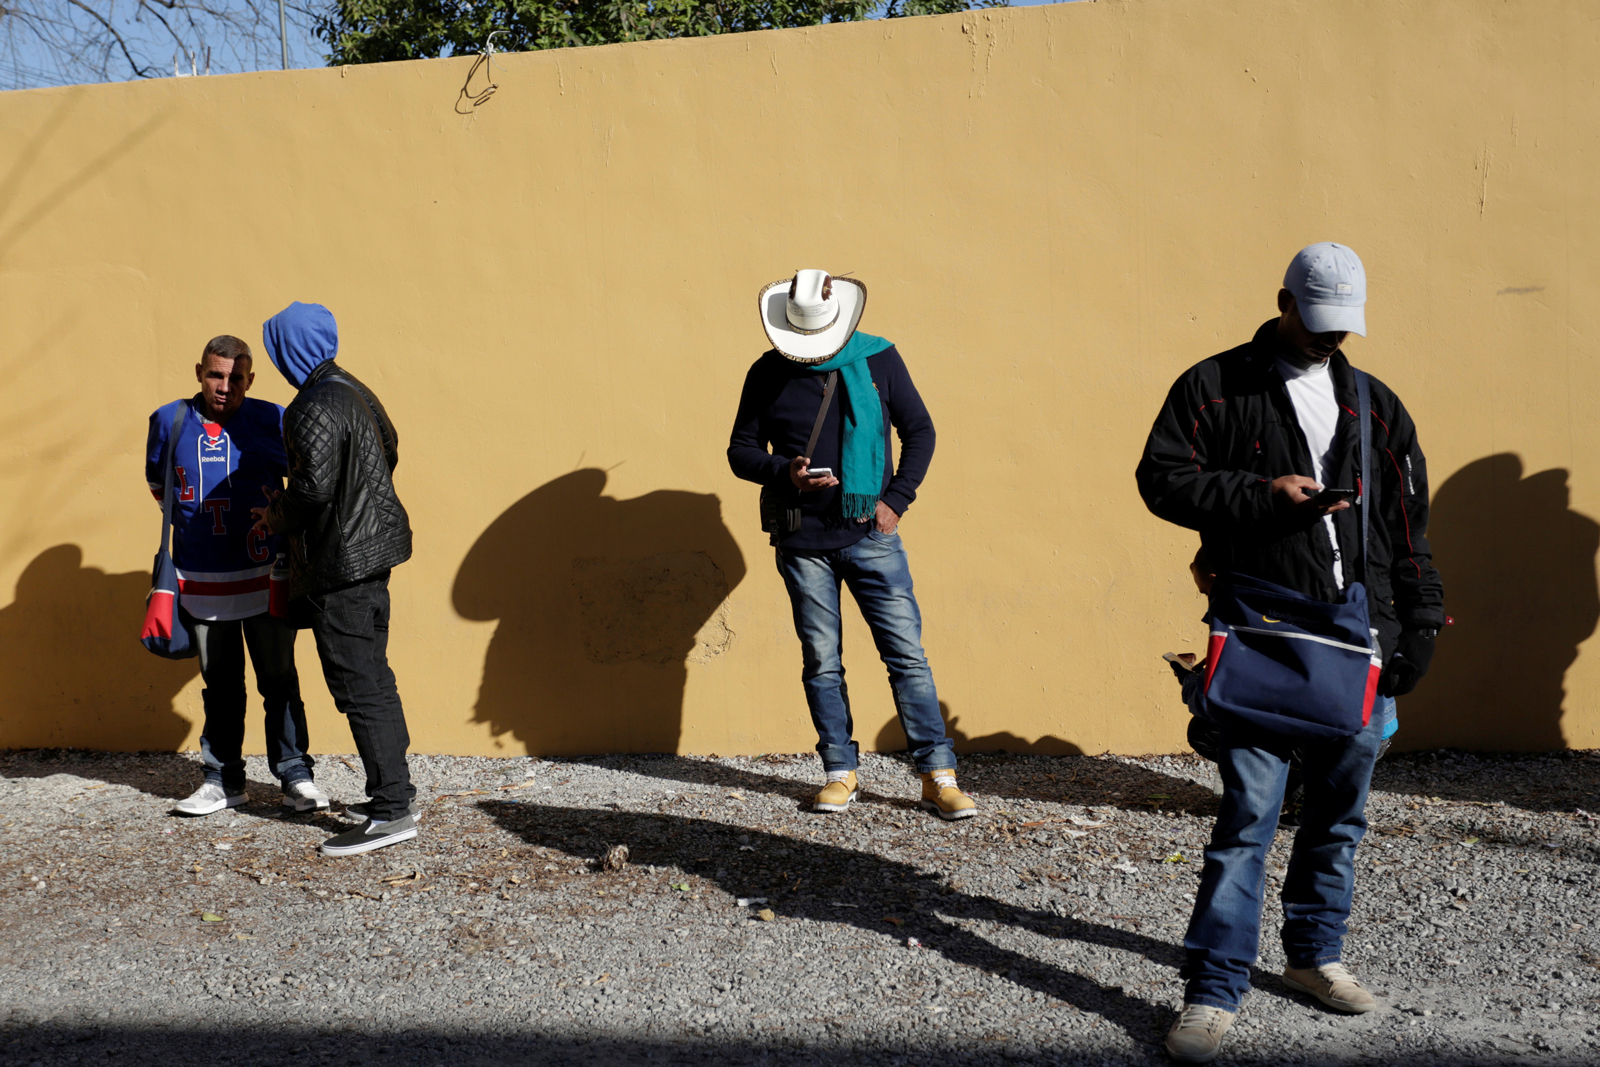 Cuban migrants stranded on their way to the US, Nuevo Laredo, Mexico, February 16, 2017